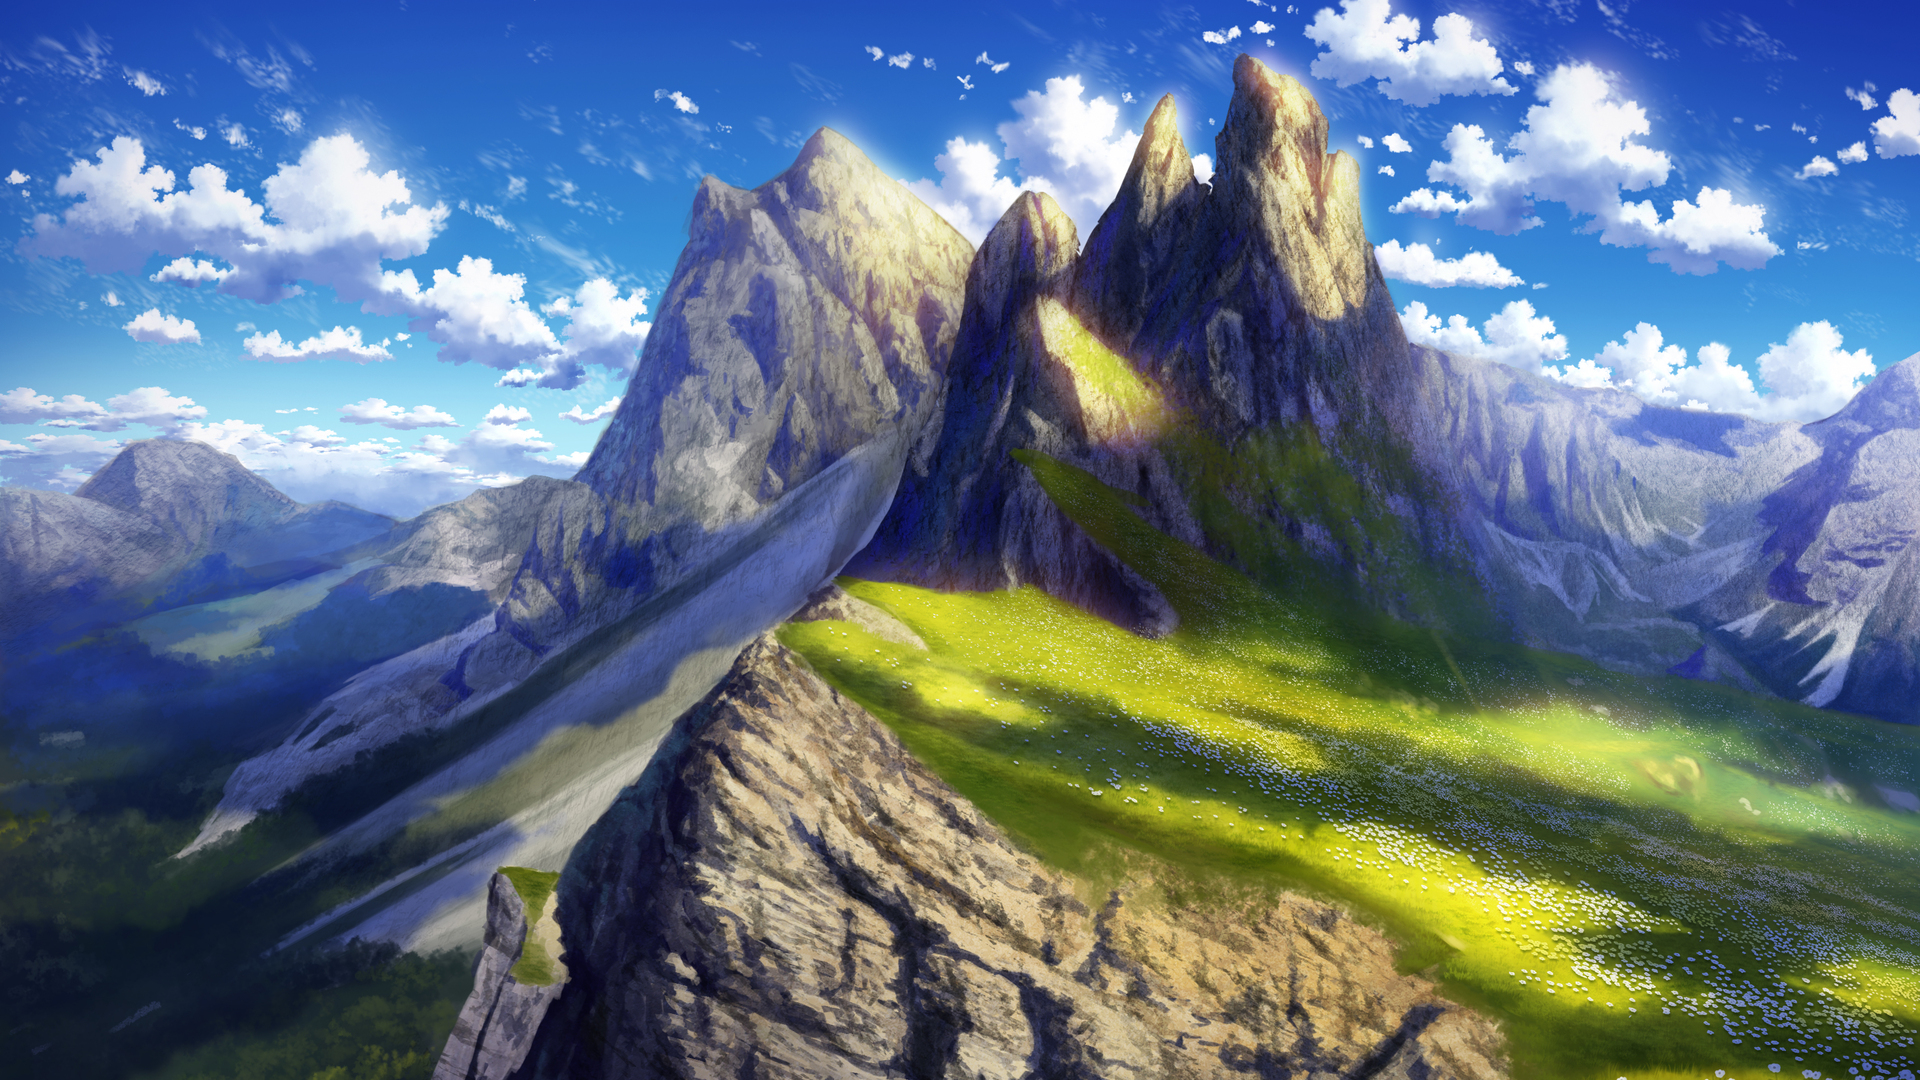 1920x1080 Anime Landscape 4k Laptop Full Hd 1080p Hd 4k Wallpapers